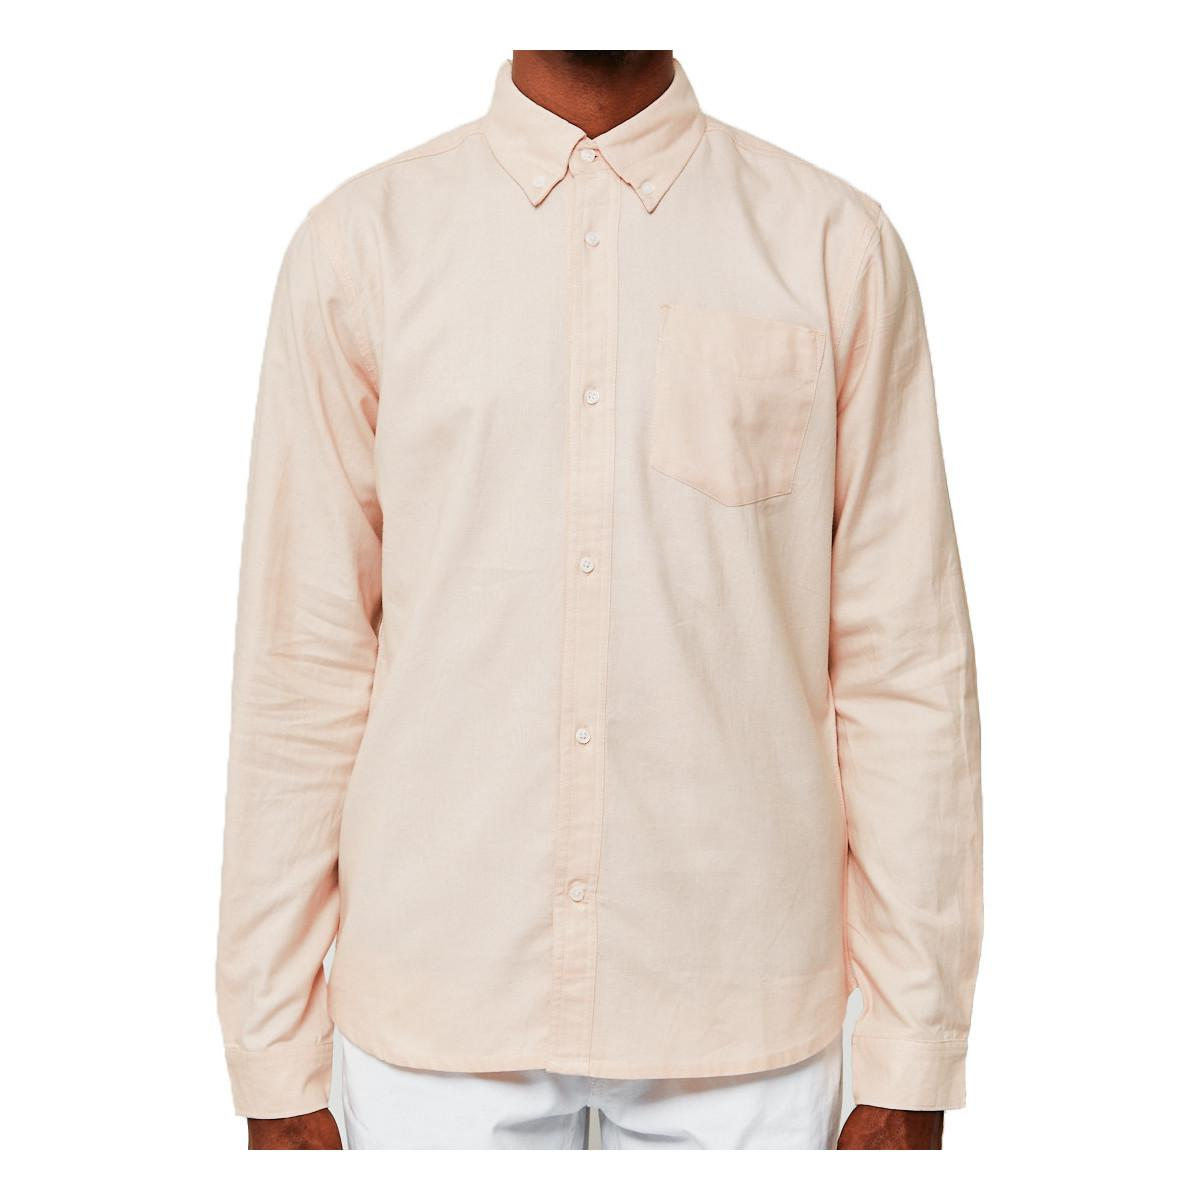 The idle man casual oxford shirt pink men 39 s long sleeved for Mens pink long sleeve shirt